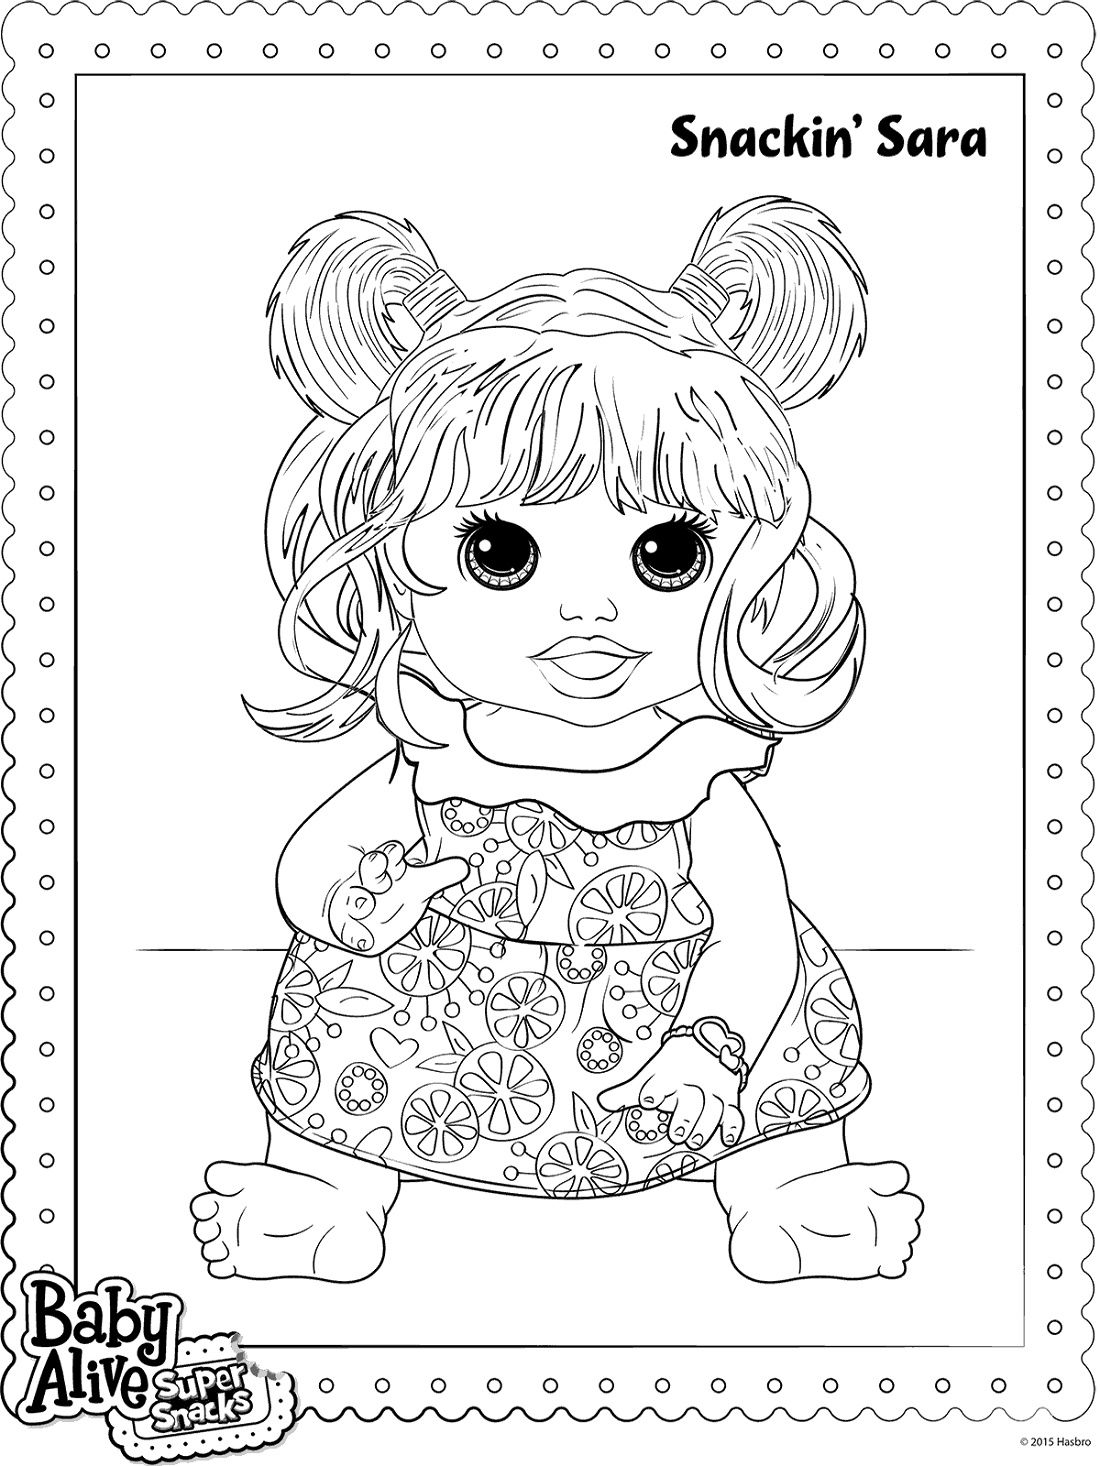 Snacking Sara Baby Alive Coloring Pages K5 Worksheets Baby Alive Sailor Moon Coloring Pages Coloring Pages